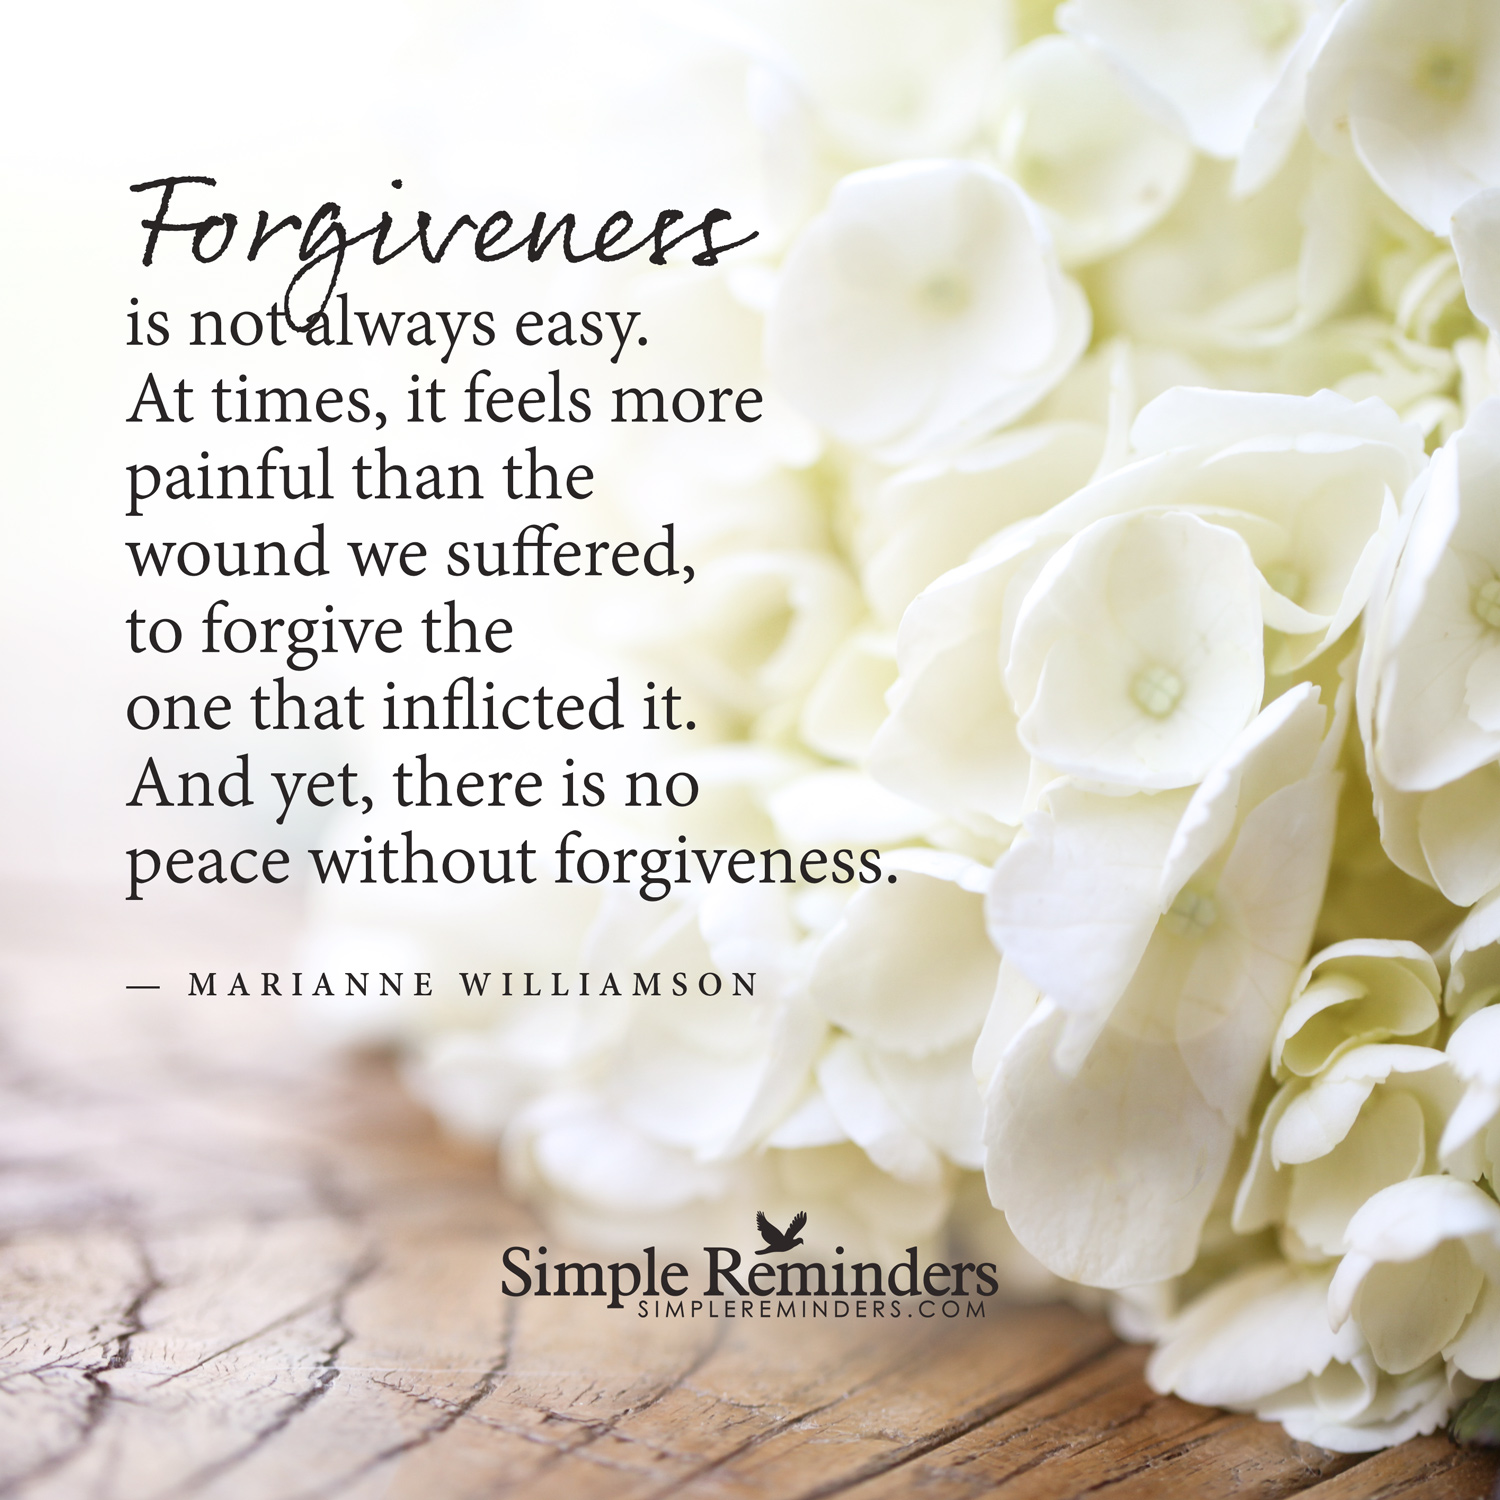 marianne-williamson-forgiveness-not-easy-peace-9c3f